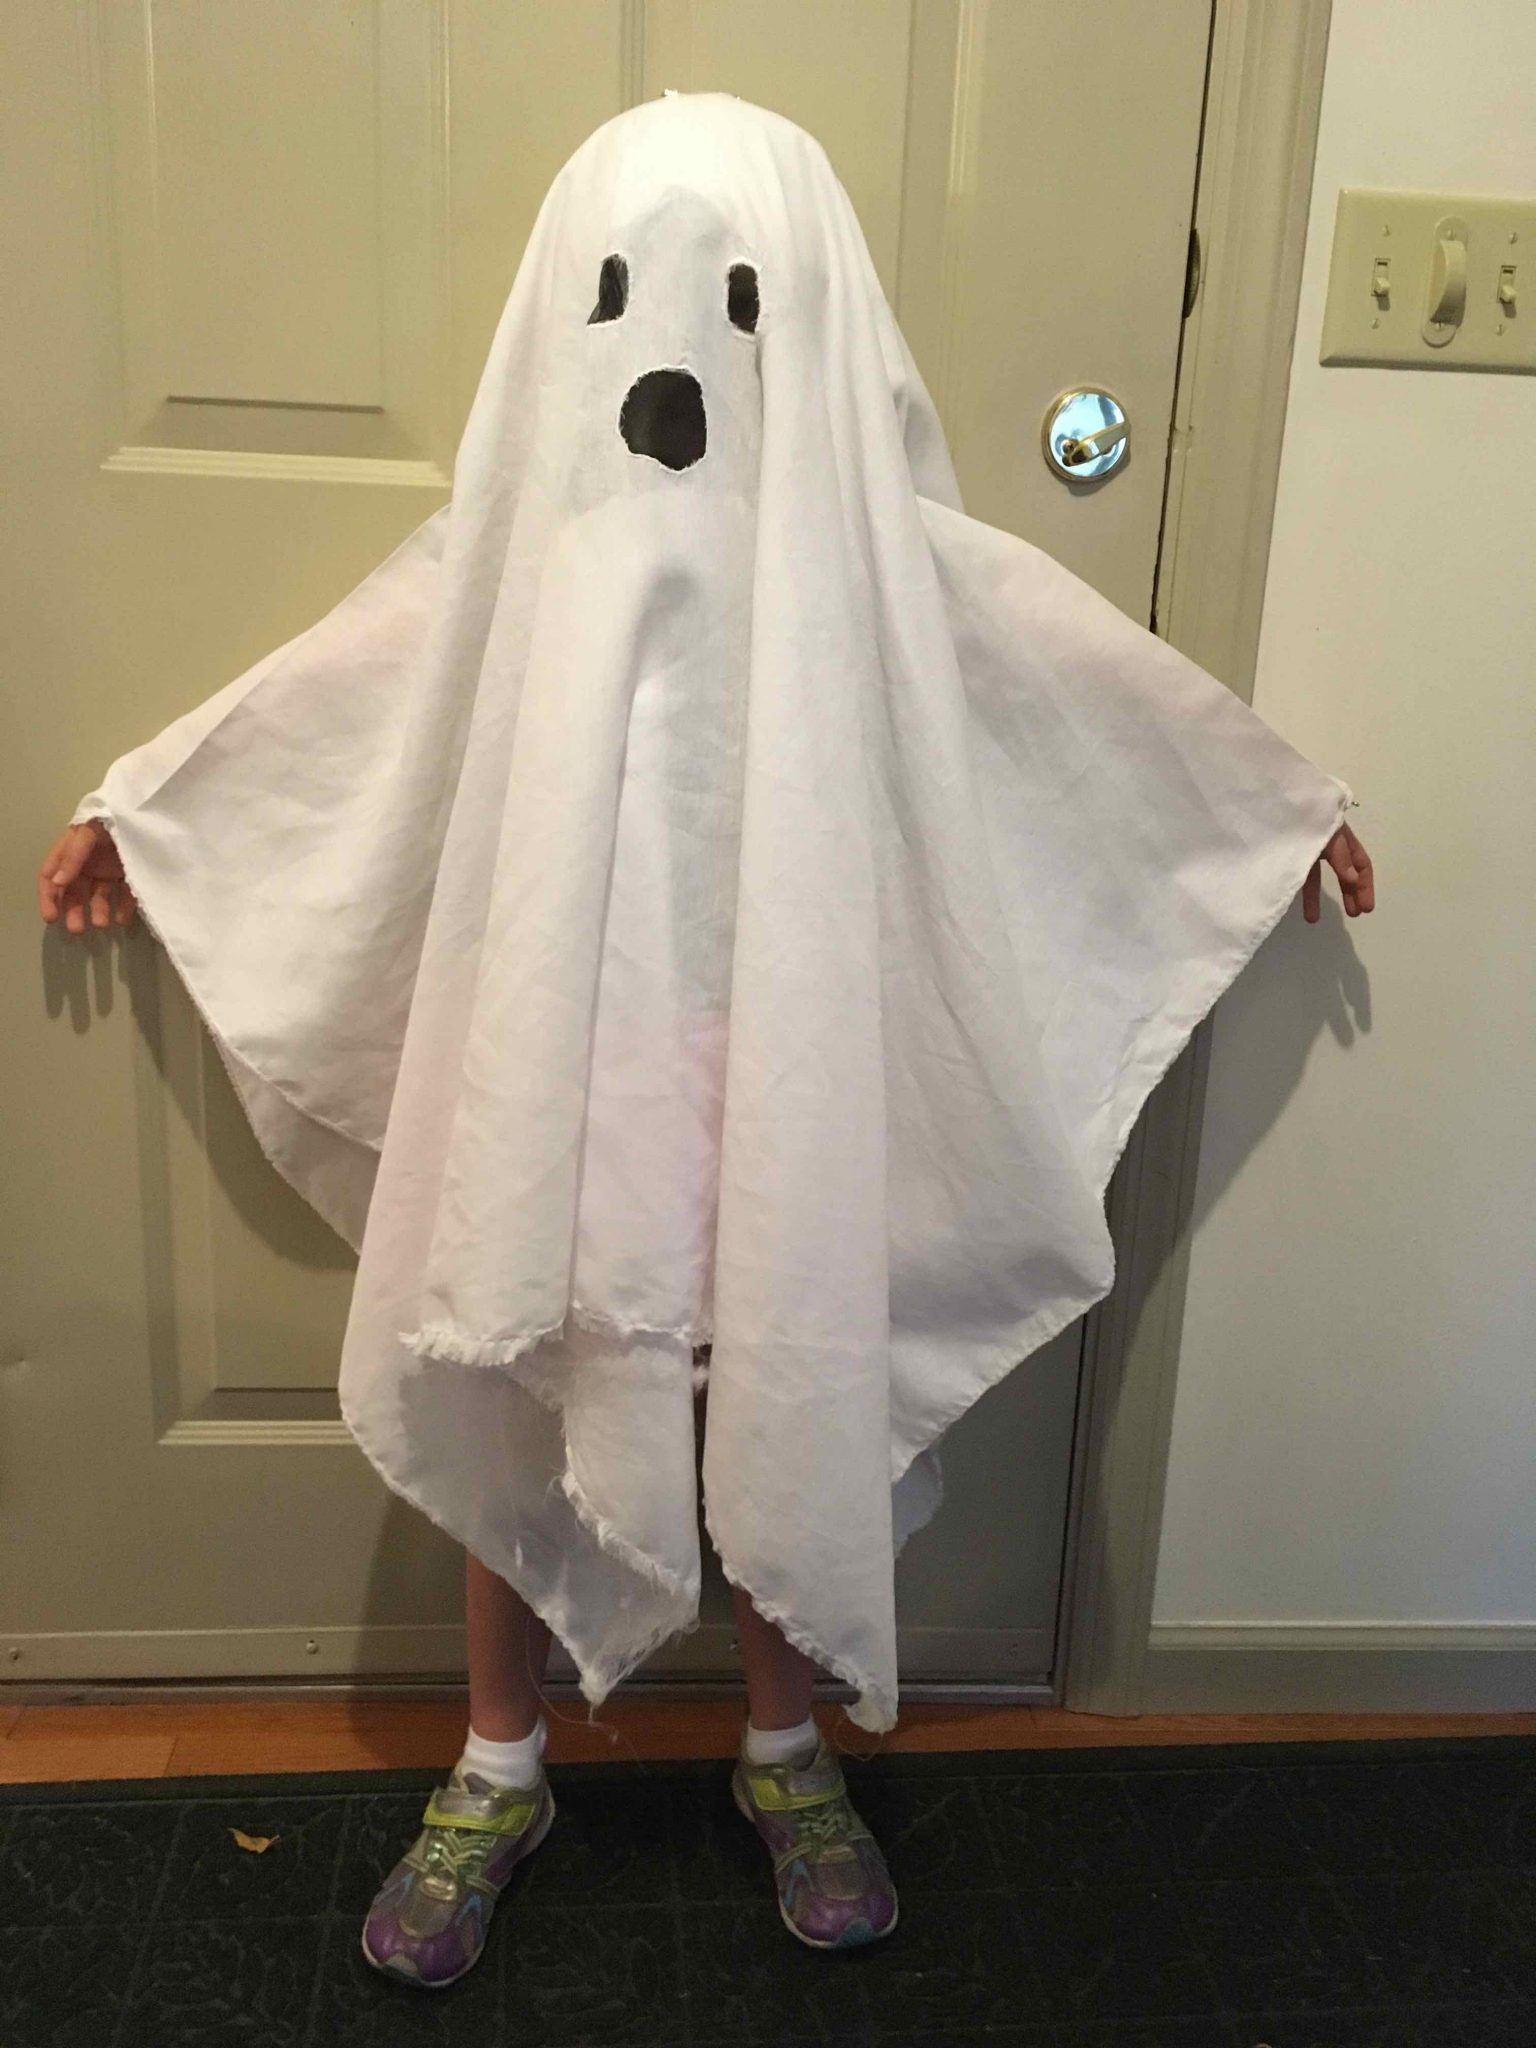 How To Make A Ghost Costume (It's Harder Than You'd Think